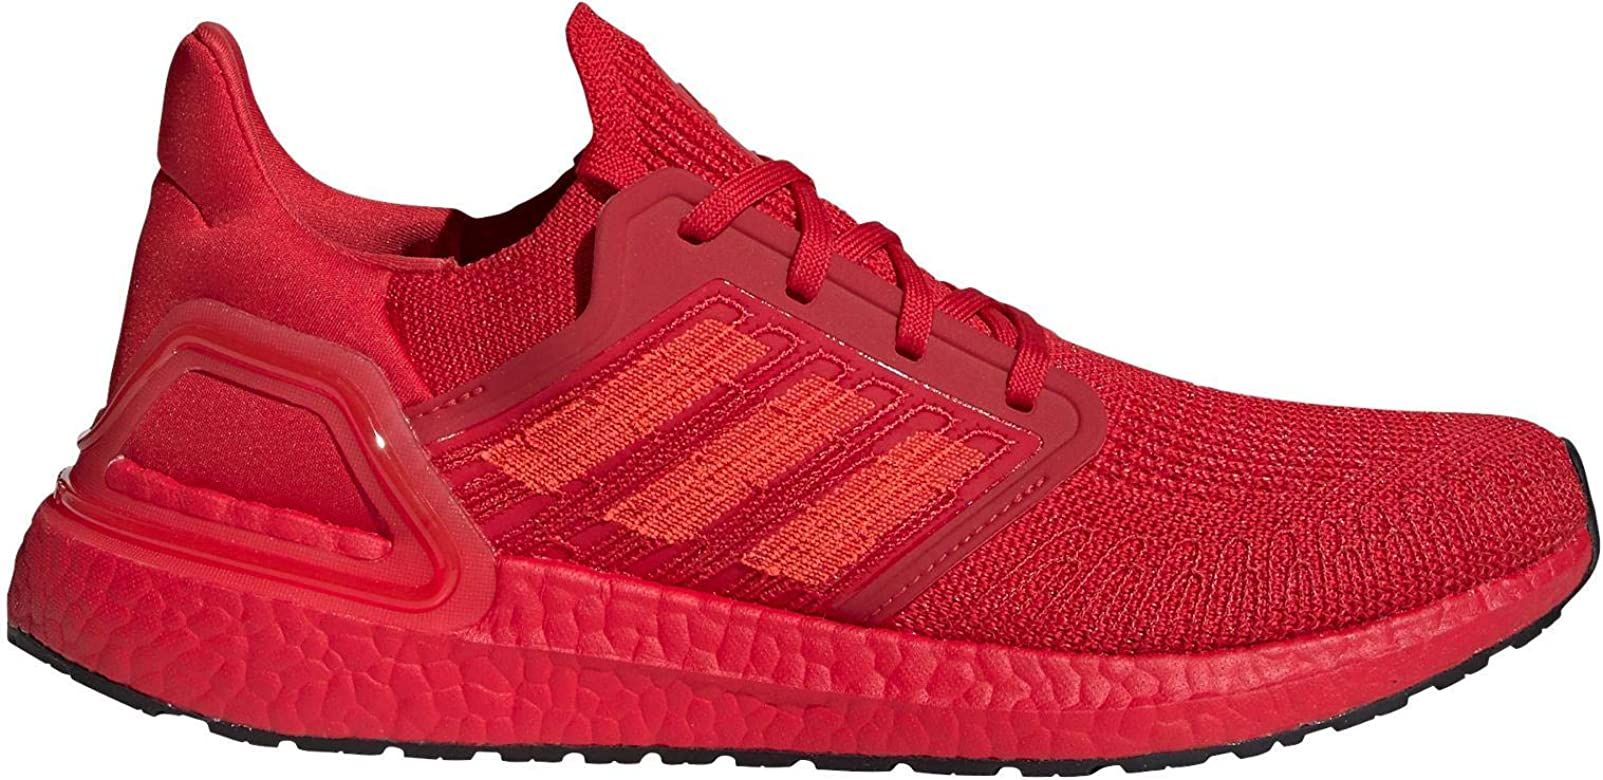 Adidas Ultra Boost 20 Zapatillas para Correr - SS20-40.7: Amazon.es: Zapatos y complementos